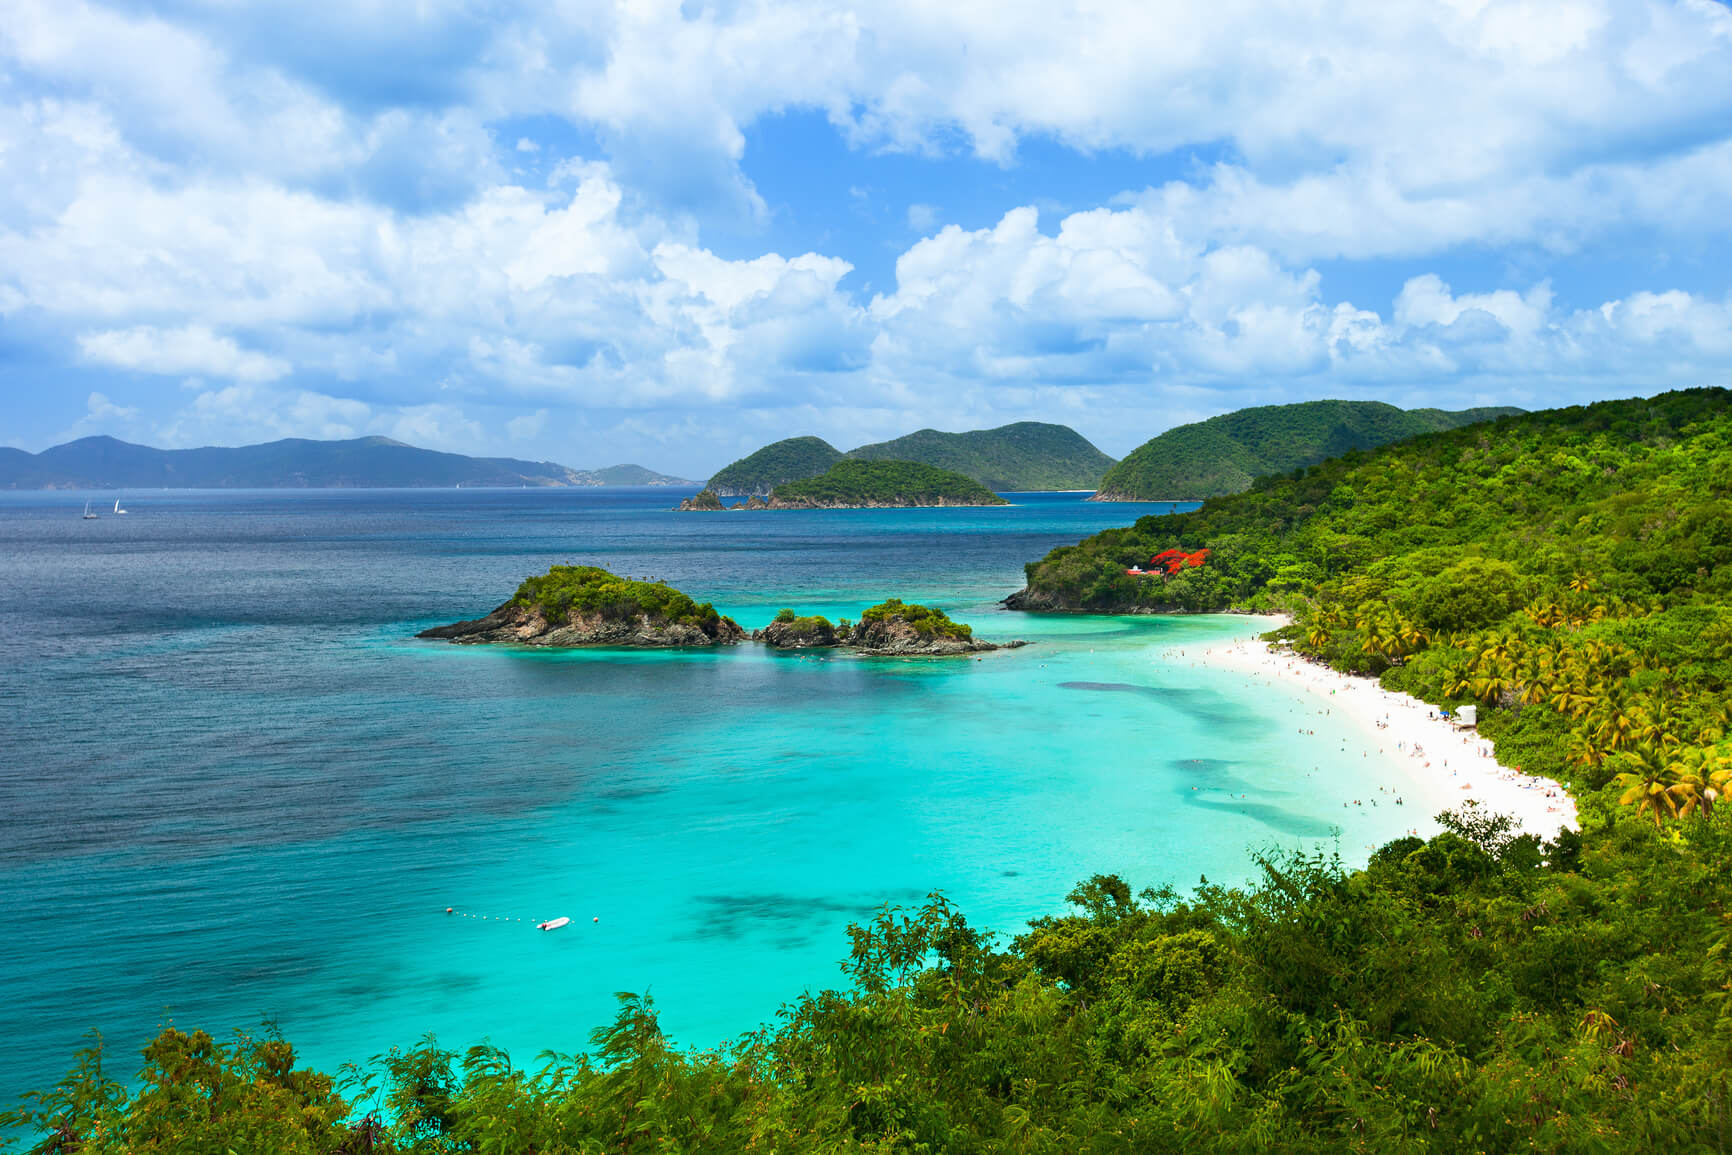 Brussels, Belgium to the US Virgin Islands for only €321 roundtrip